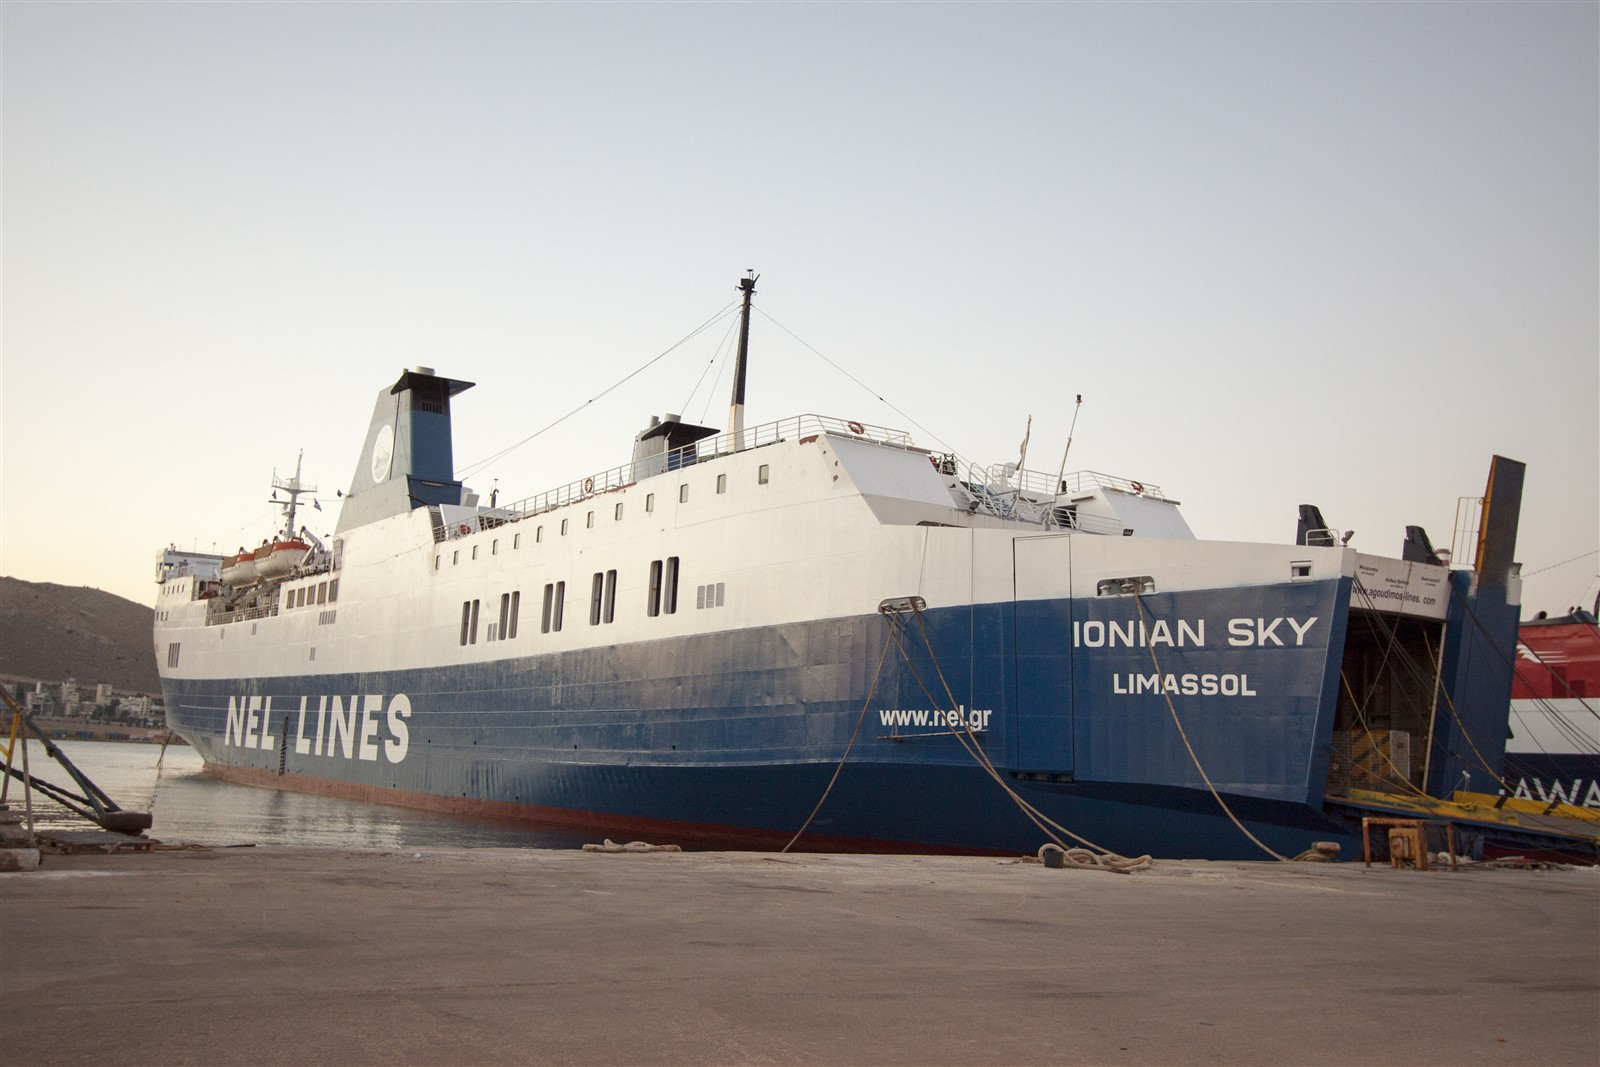 NEL LINES FB Ionian Sky 01_Personale 25Gi13